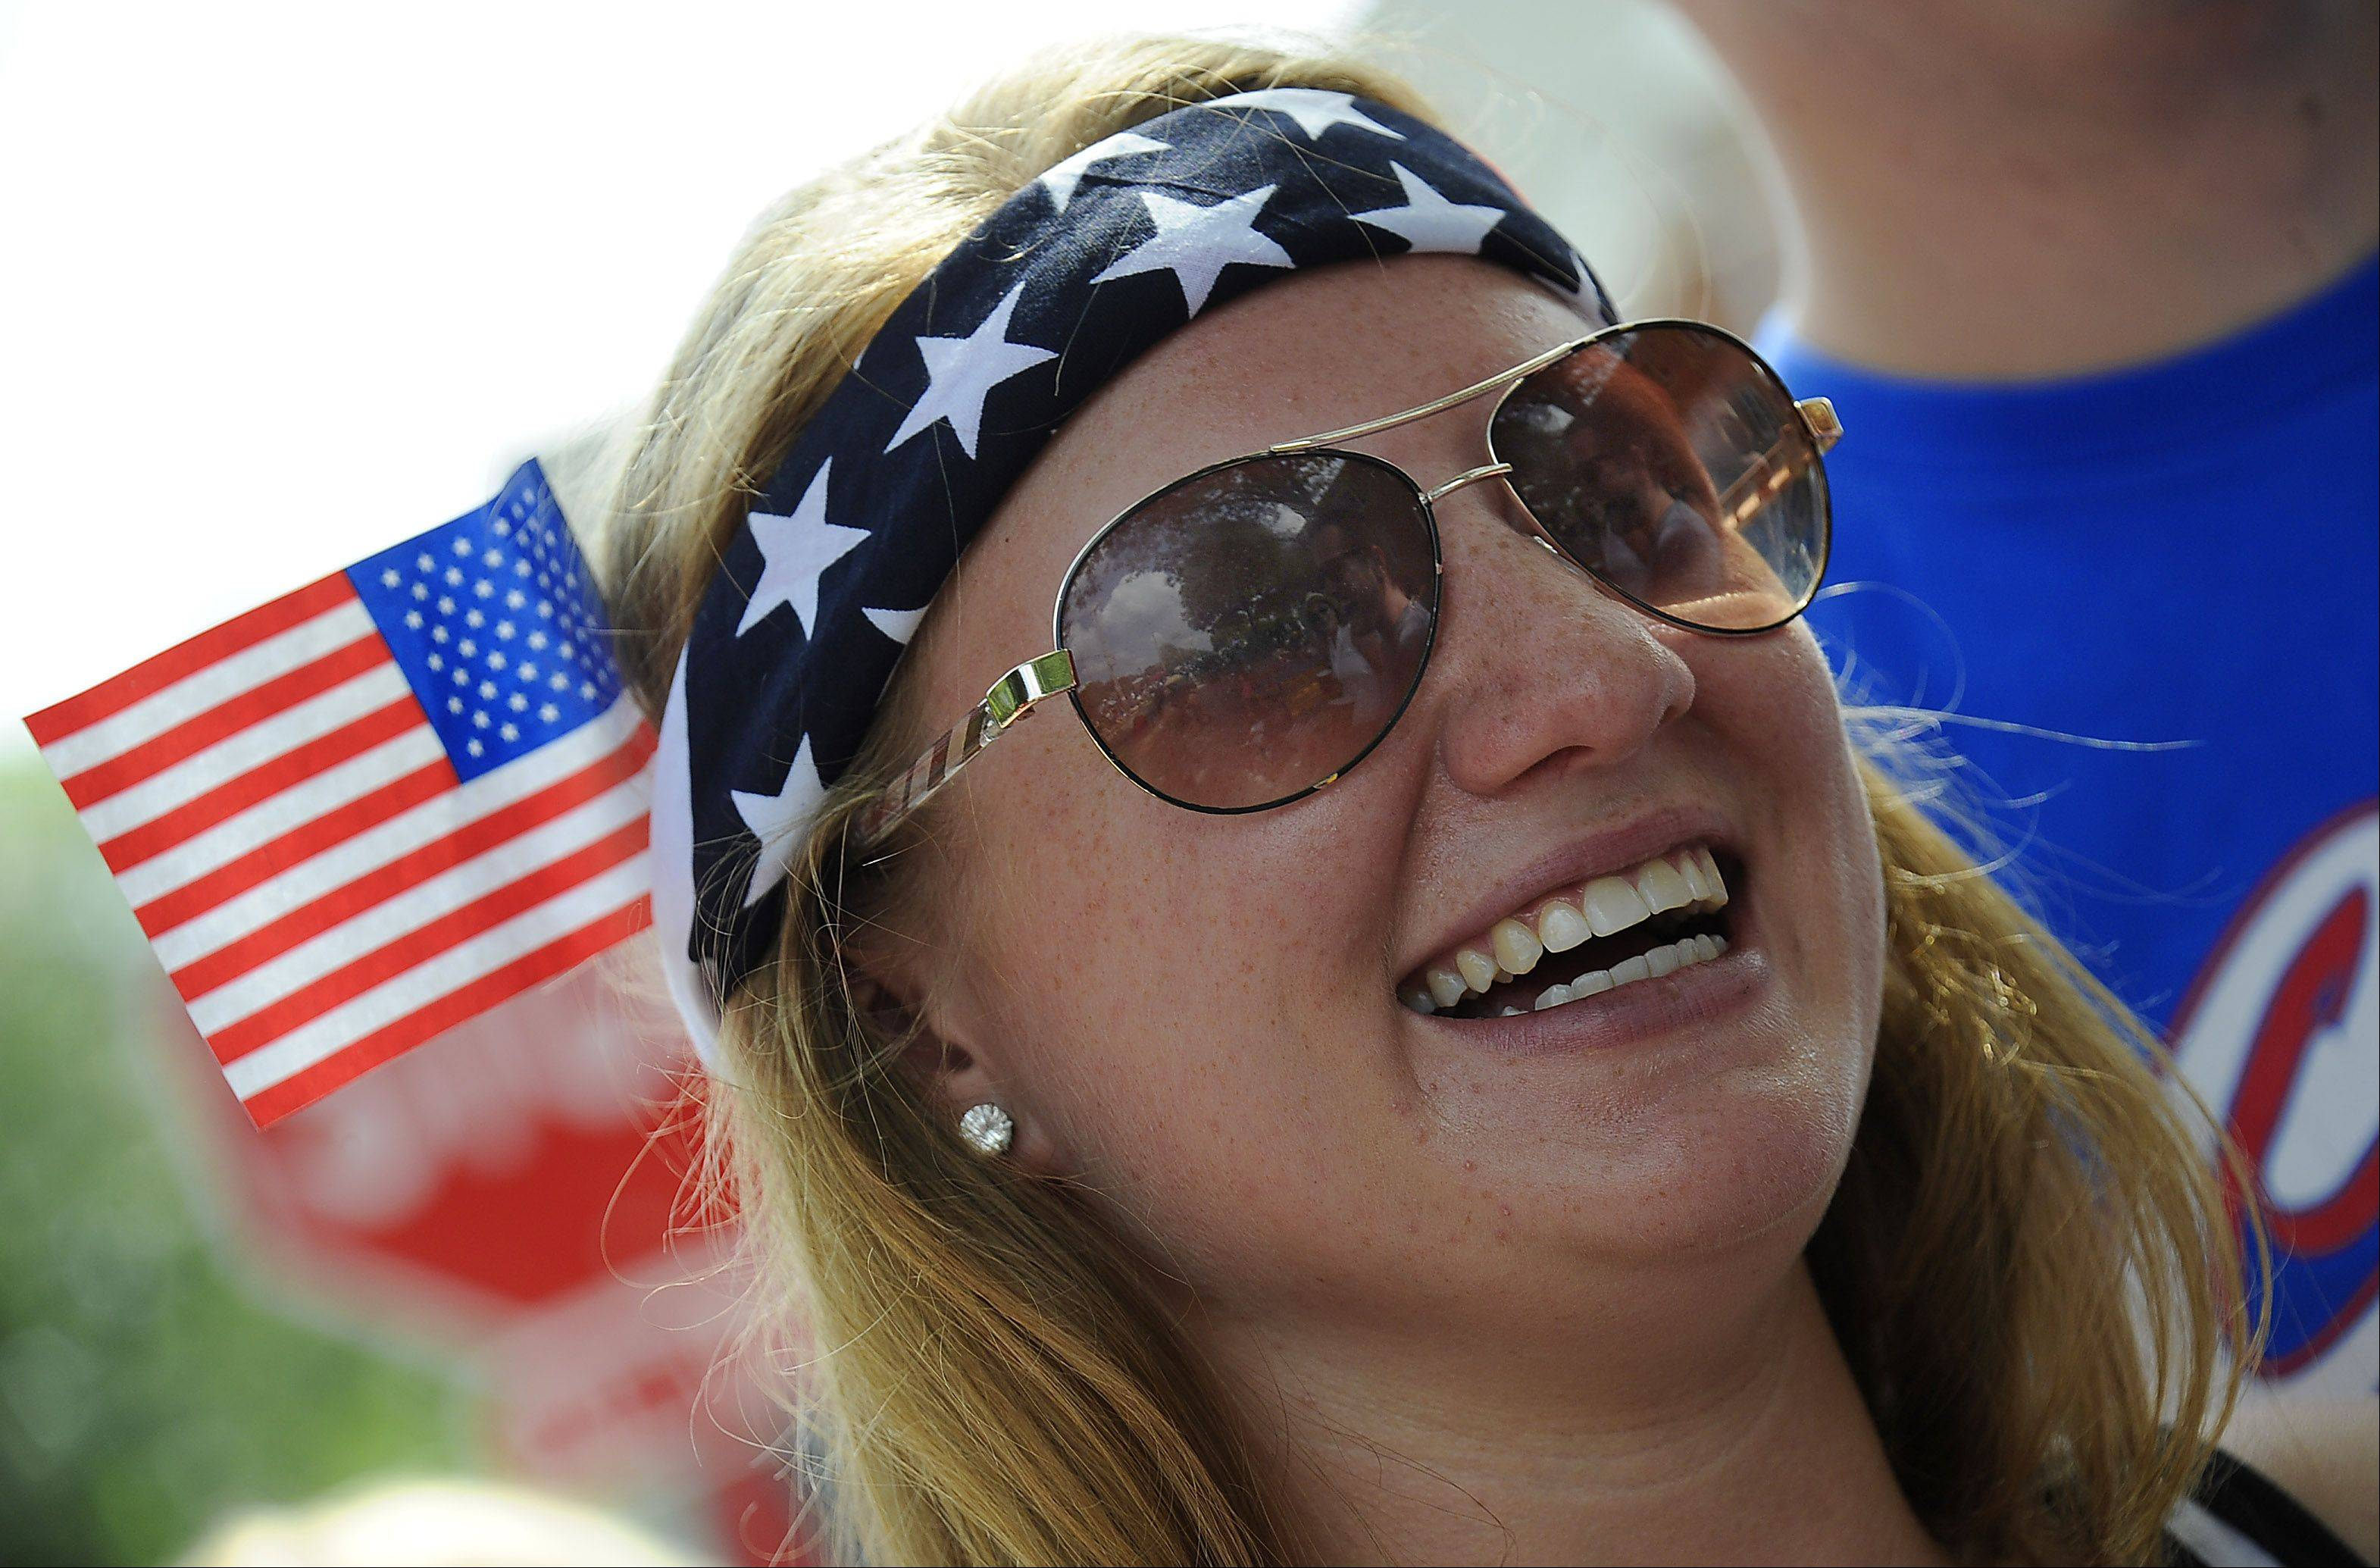 Megan Rogowski, 20, hangs with her friends and enjoys the Palatine Fourth of July parade on Saturday.